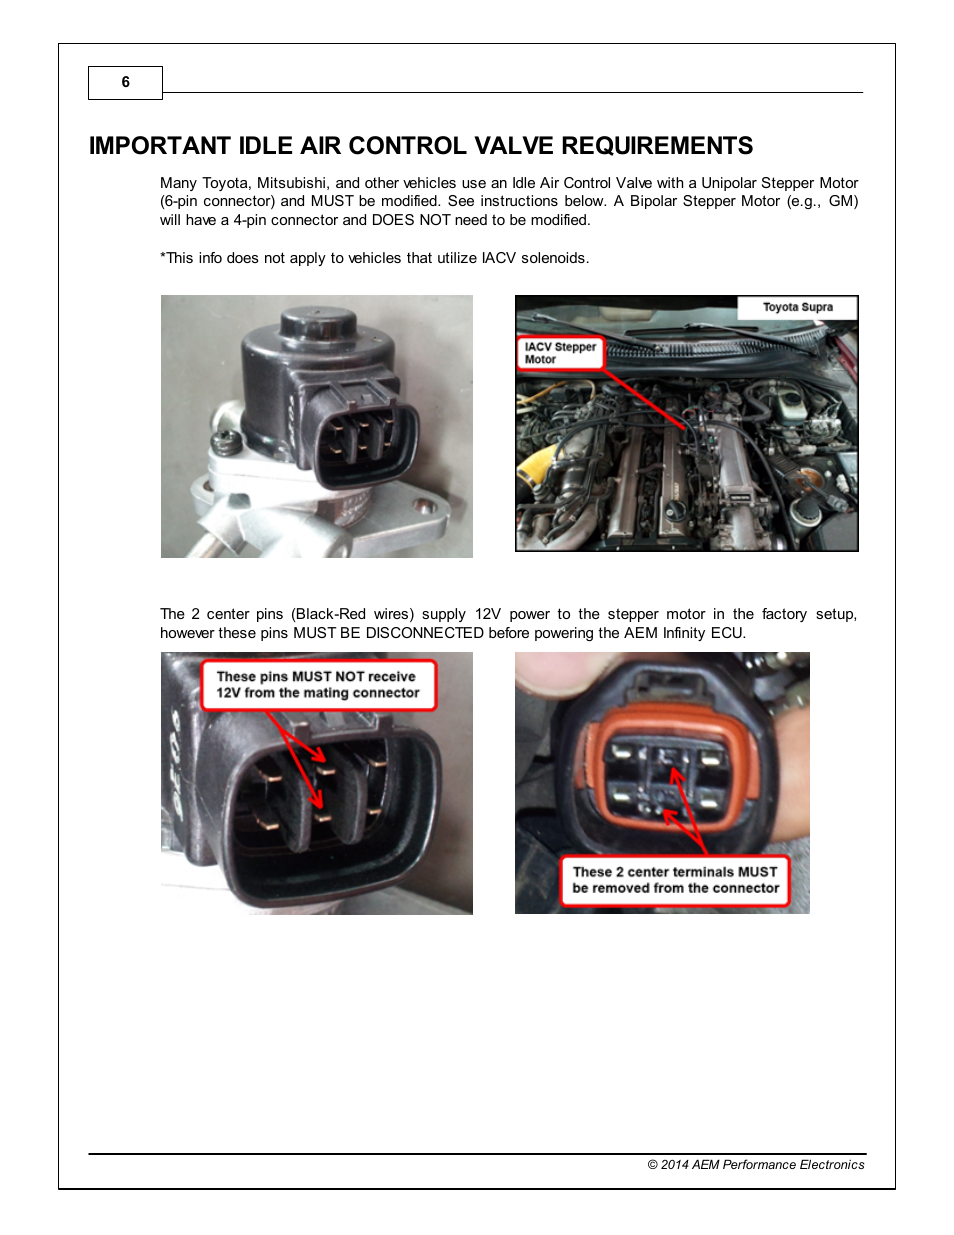 Important idle air control valve requirements | AEM Infinity Supported  Applications - Toyota 1993-1997 Supra Turbo User Manual | Page 6 / 19